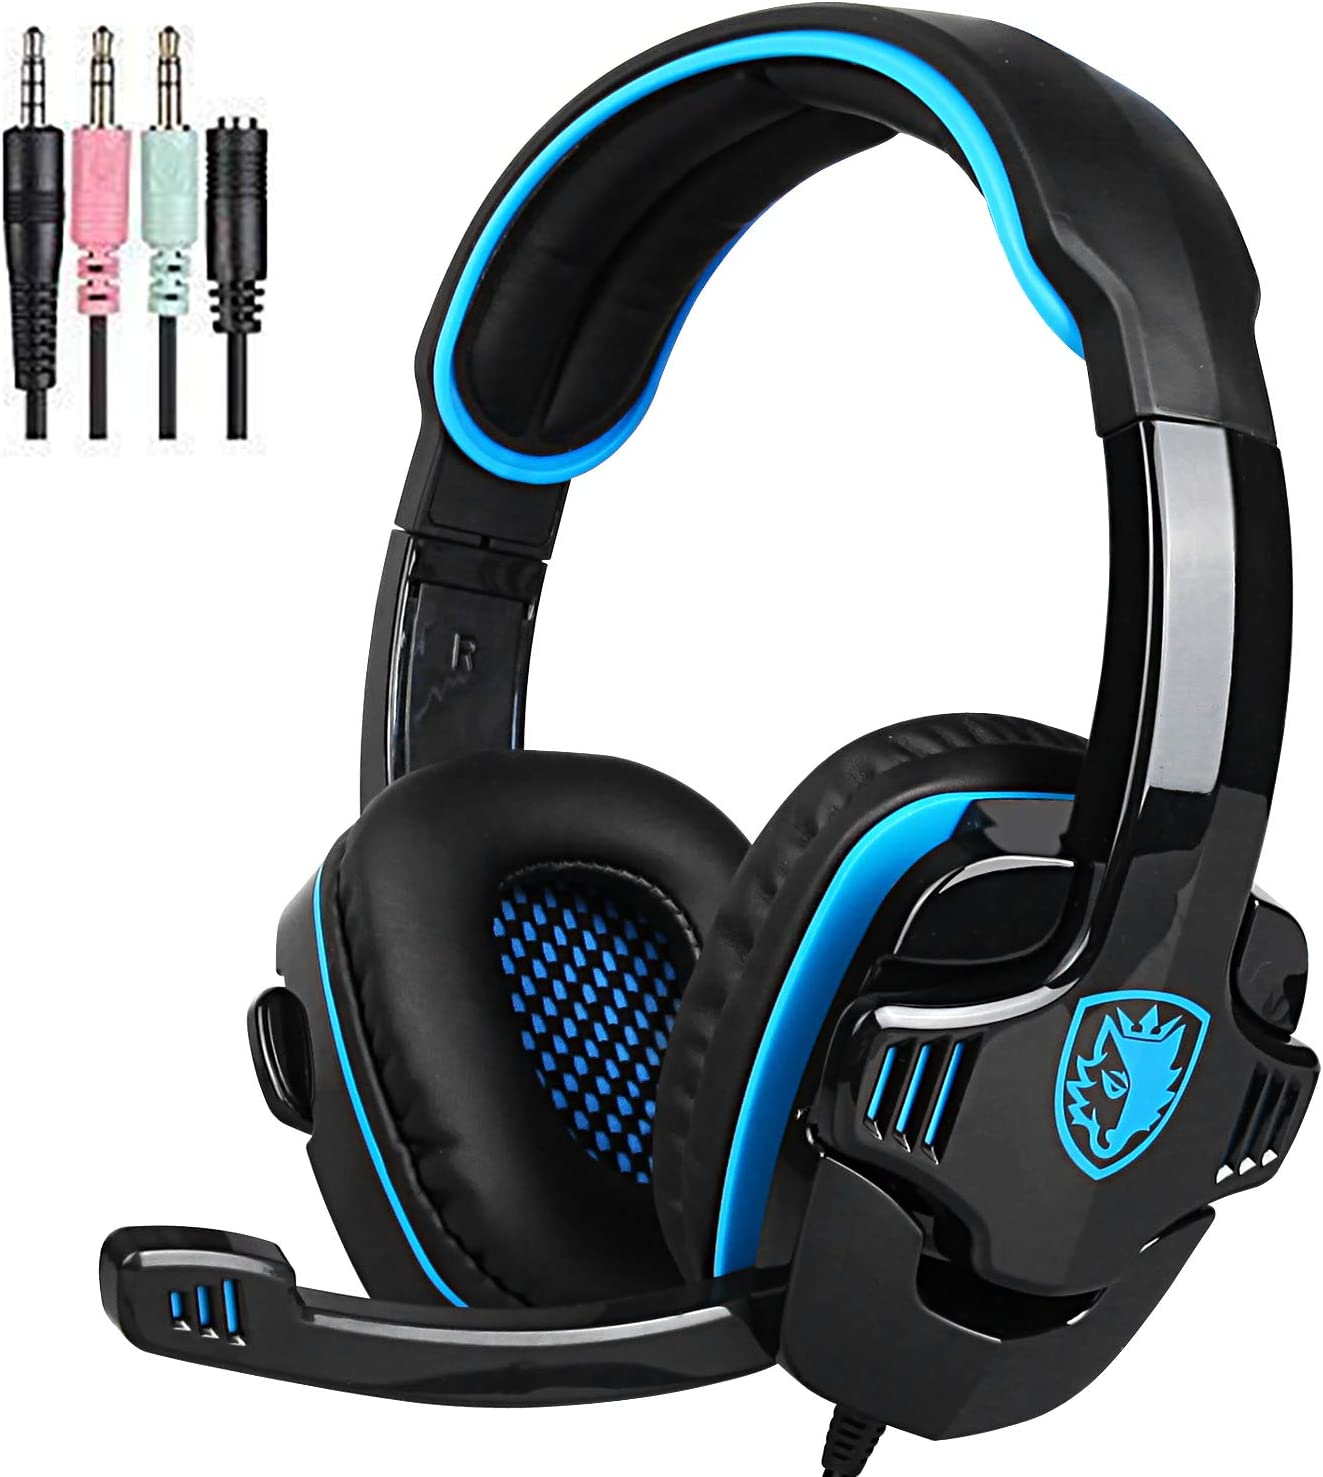 Noise Cancelling Over Ear Headphones Mic PS4 Volume Controller Bass Surround Soft Memory Earmuffs for Computer Laptop Mac PC SADES SA708GT Gaming Headset for Xbox One